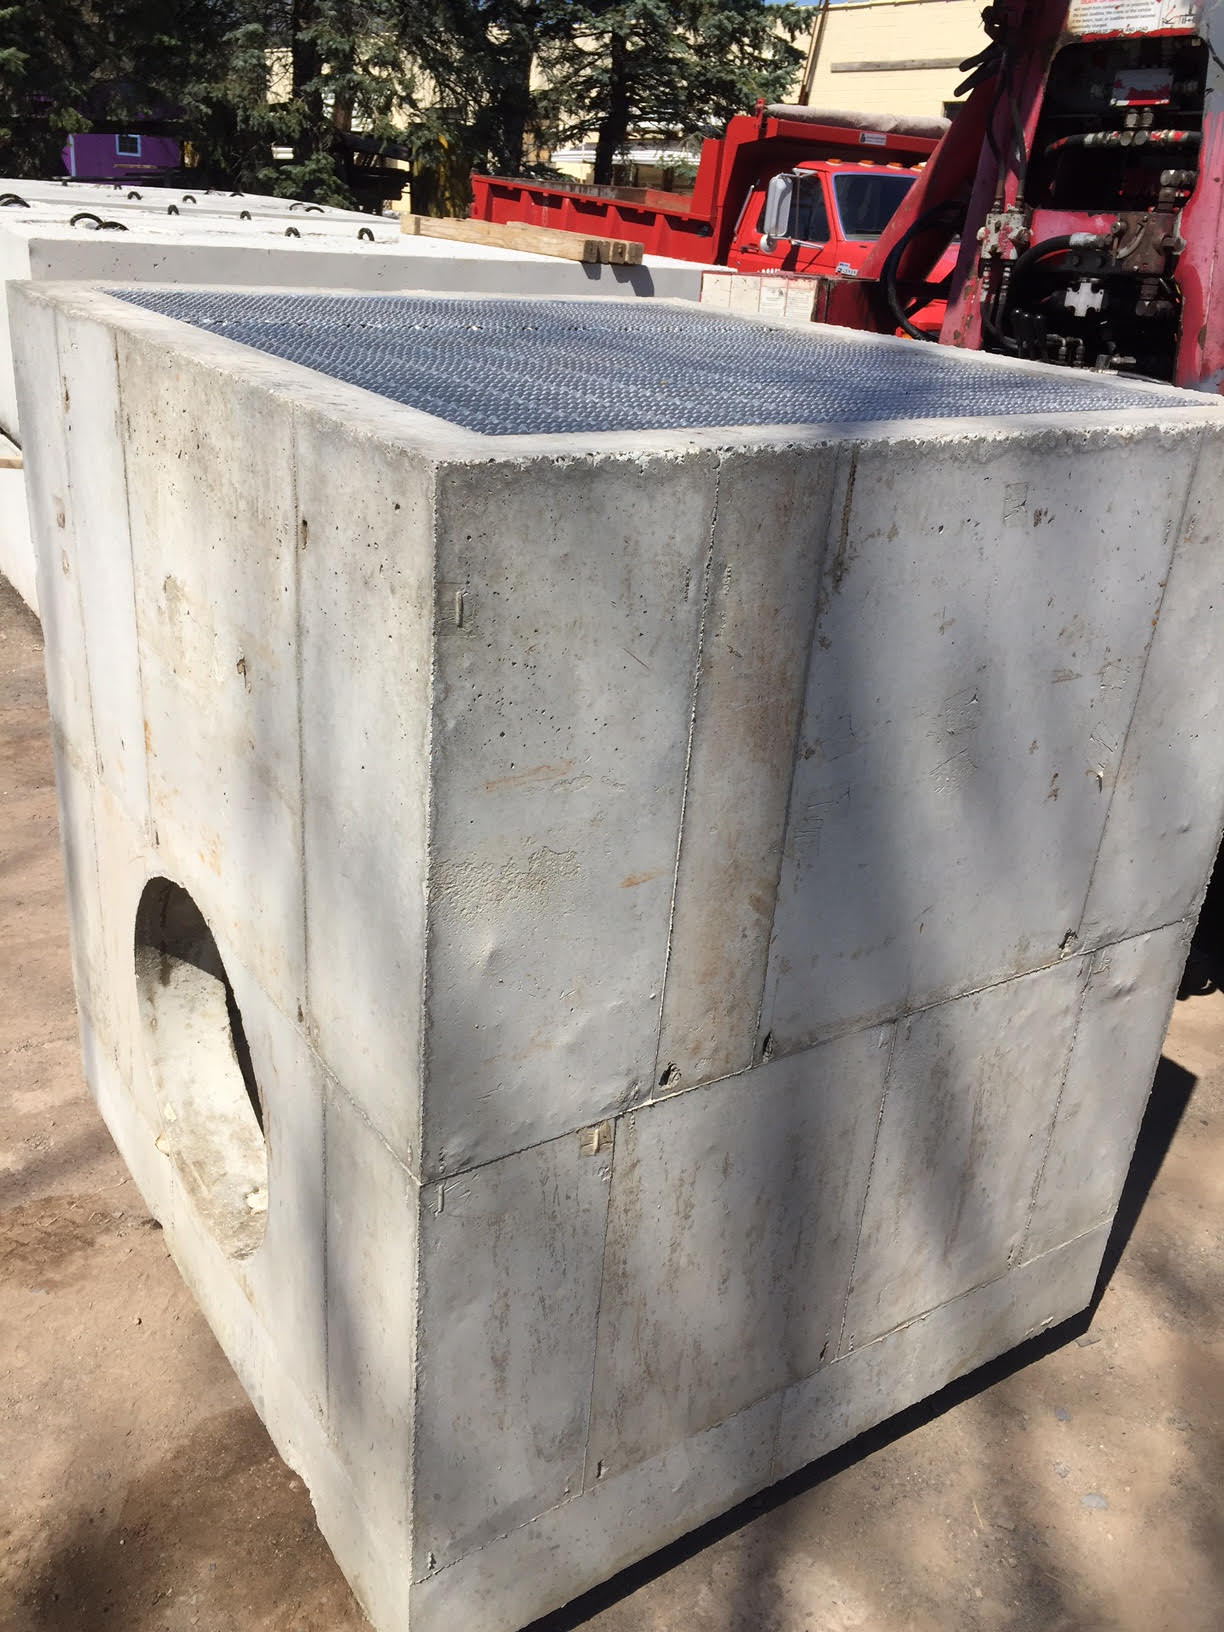 A D-Inlet with Aluminum Grate on Top.